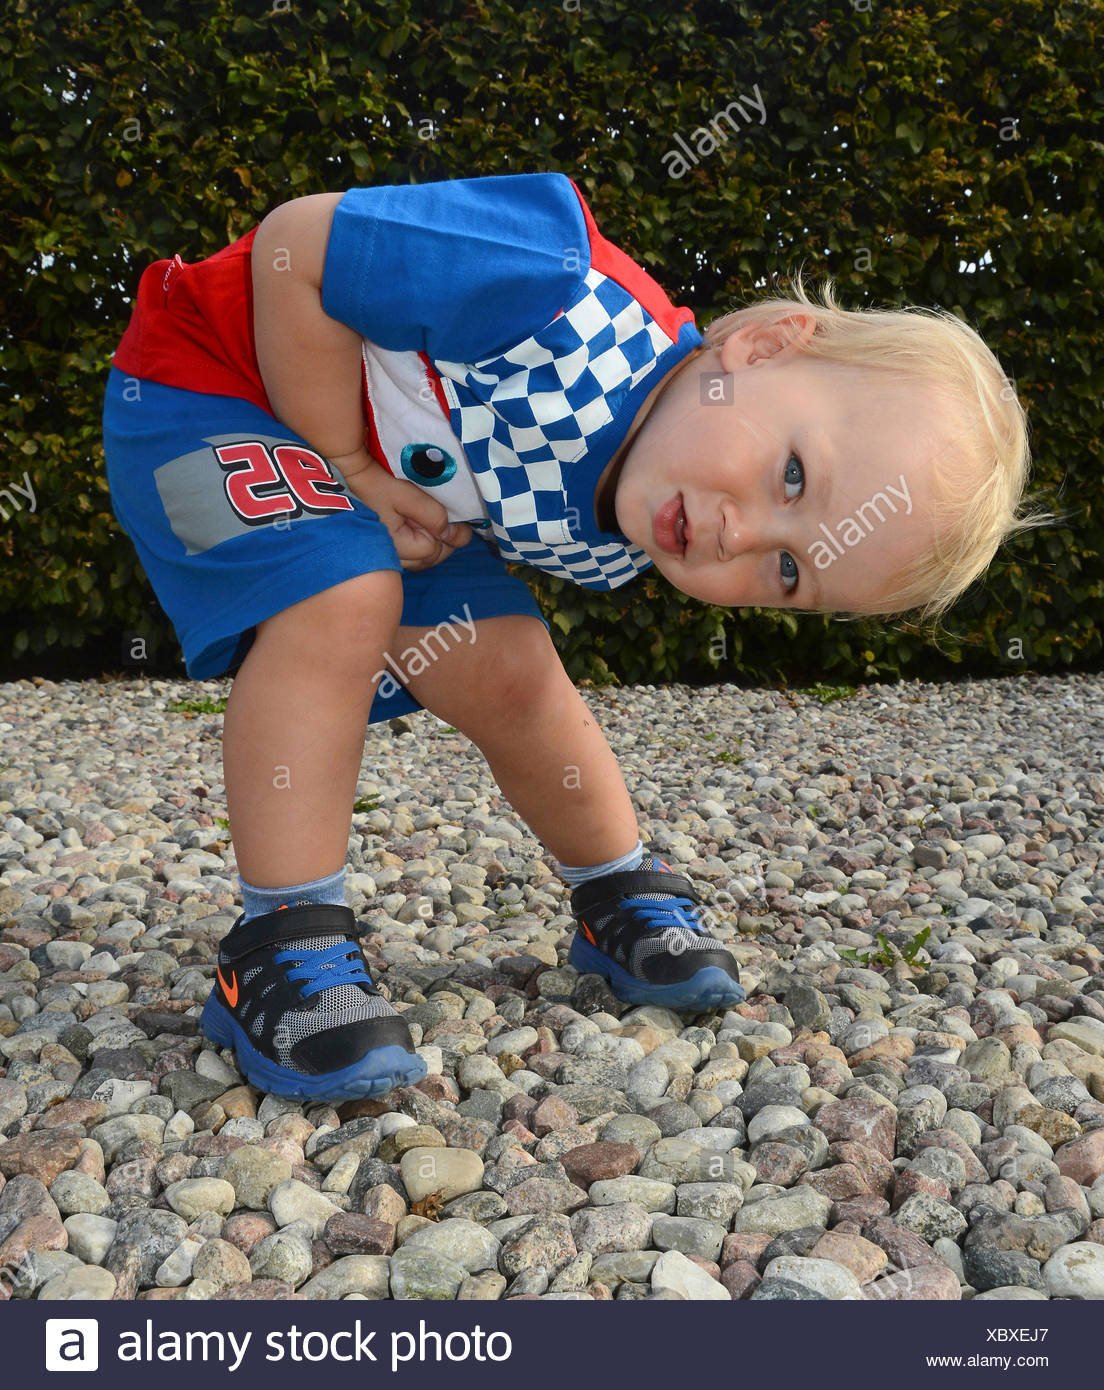 Little blond boy in colorful outfit, two and one-half years old, crouching and discovering his surroundings, Ystad, Sweden - Stock Image